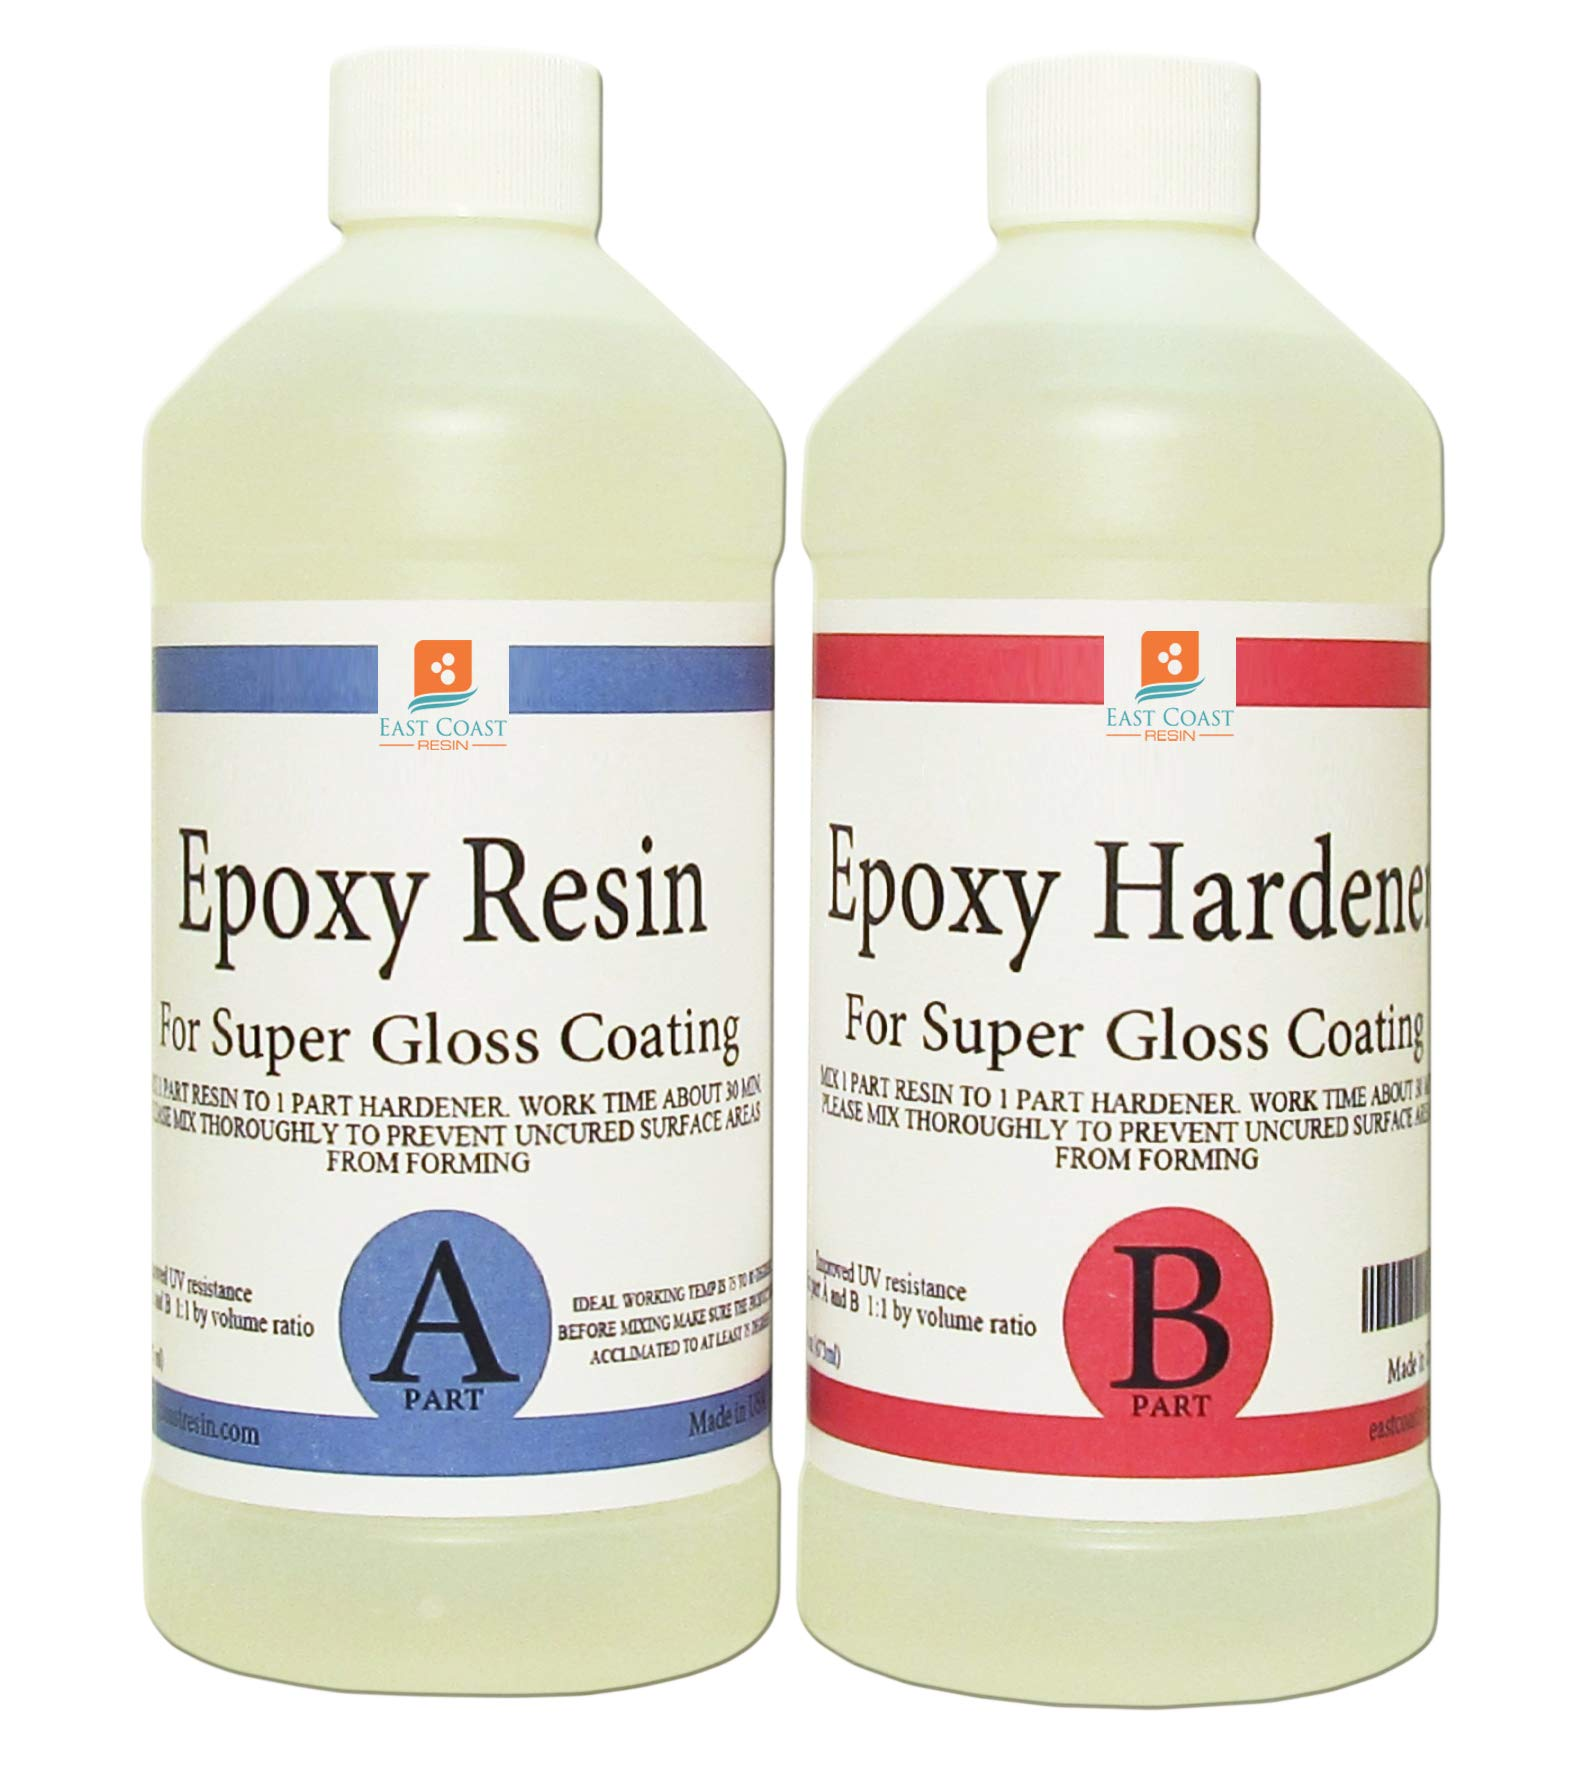 EPOXY Resin 8 oz Kit. for Super Gloss Coating and TABLETOPS